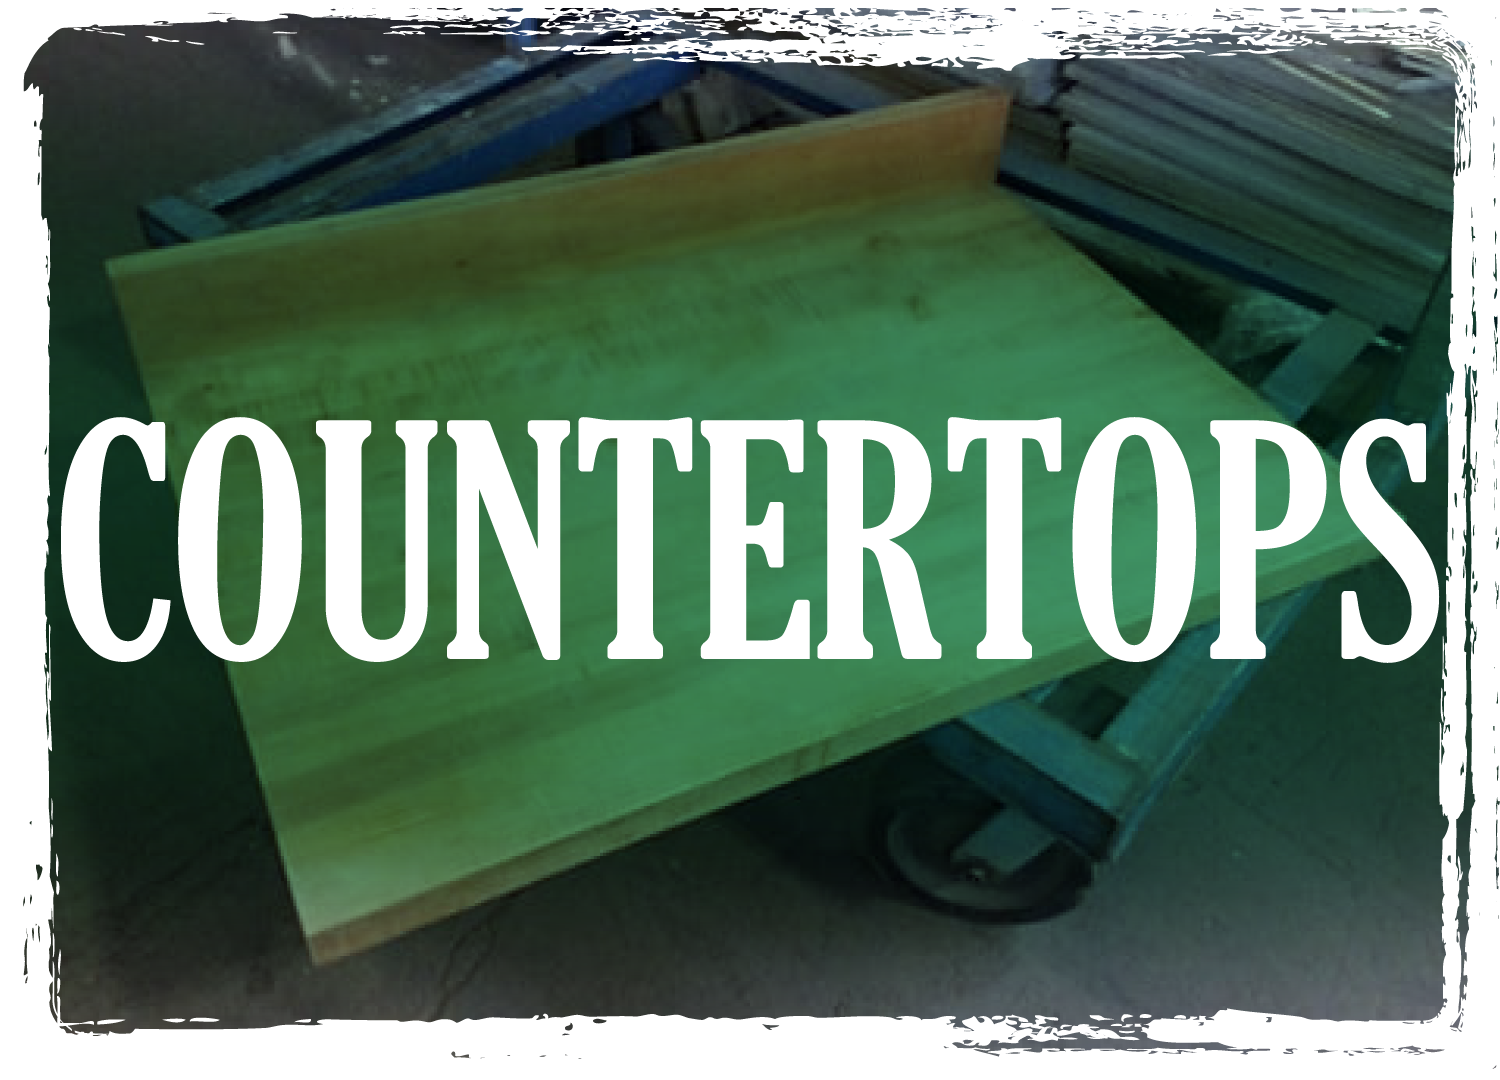 Countertops Stock Image - Click for guidelines